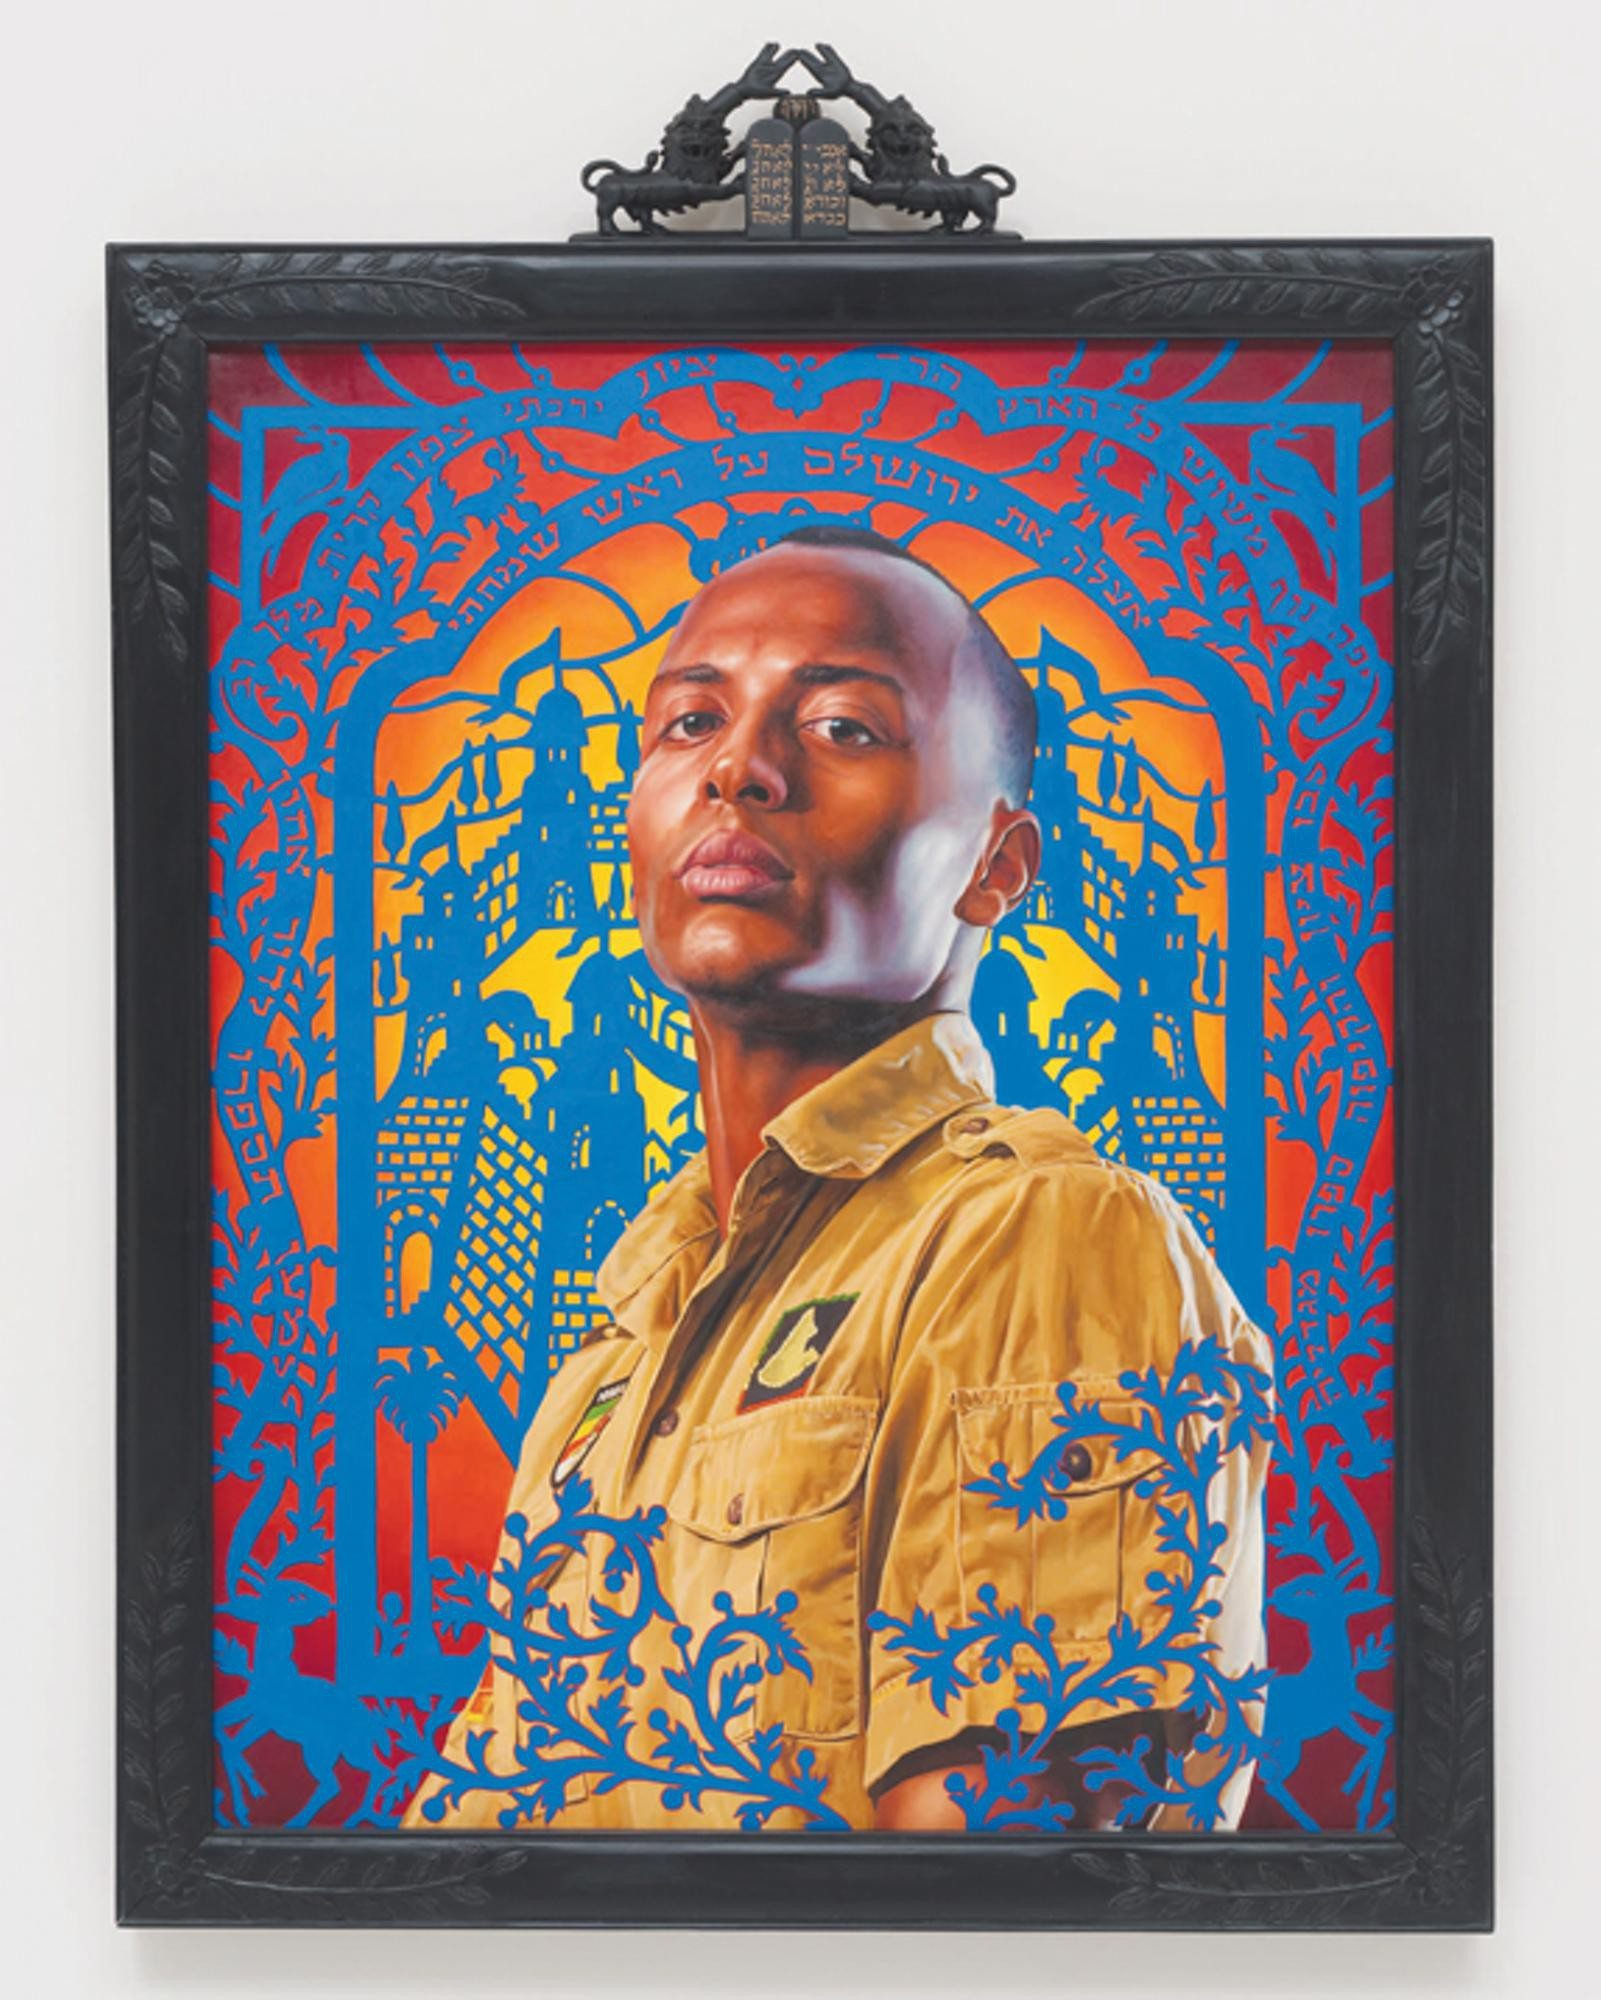 """Courtesy Photo""""Kalkidan Mashasha II"""" is a portrait of an Ethiopian hip hop musician on view in """"Kehinde Wiley /The World Stage: Israel"""" on view at the Contemporary Jewish Museum."""